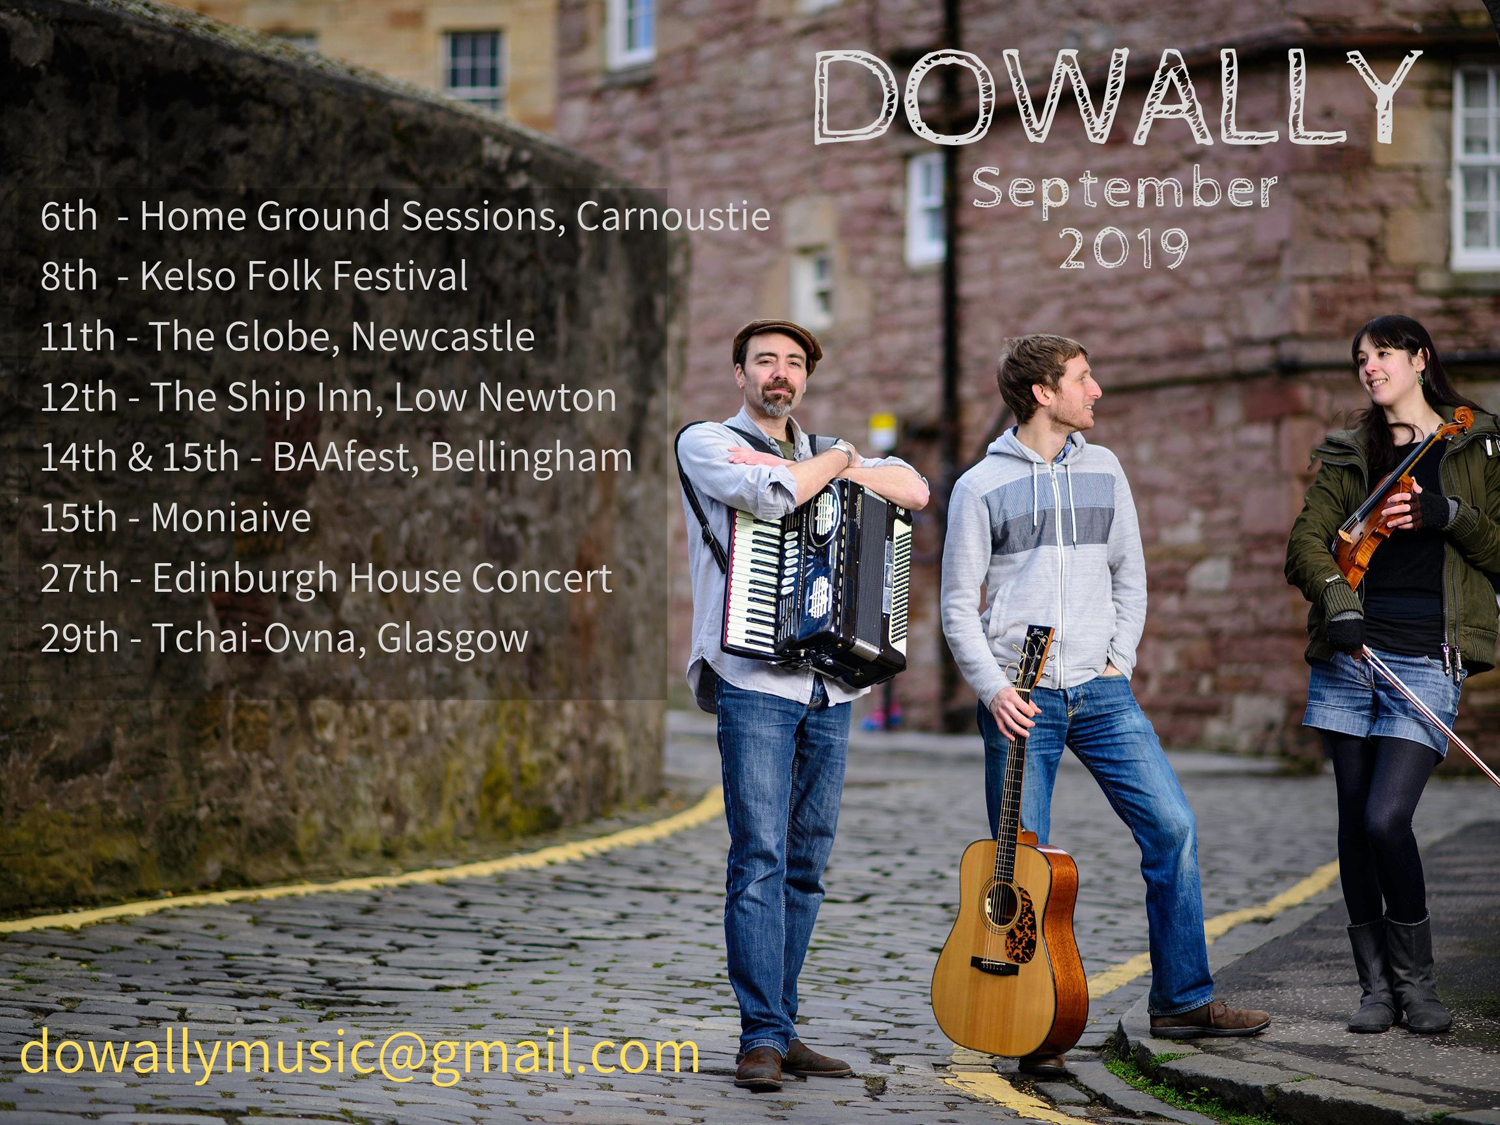 Dowally September 2019 tour dates poster